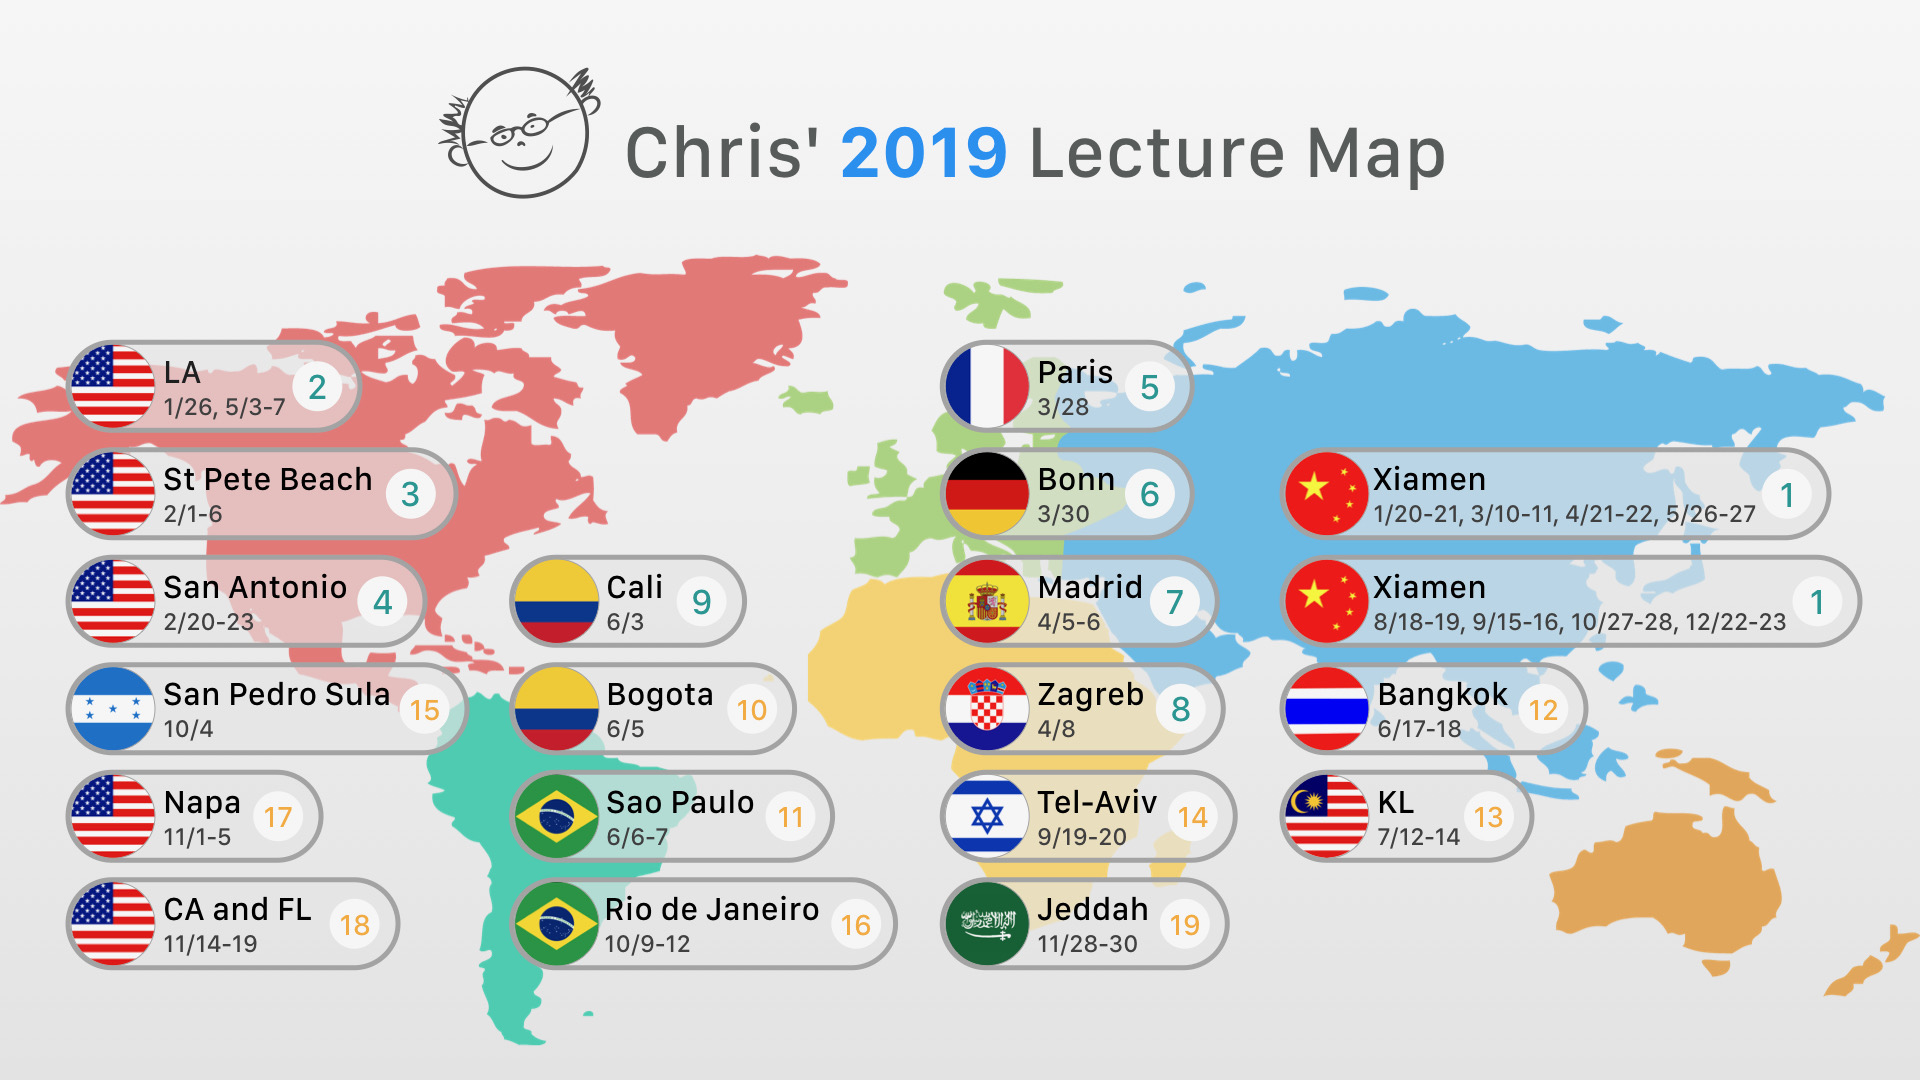 Chris' 2019 Lecture Map